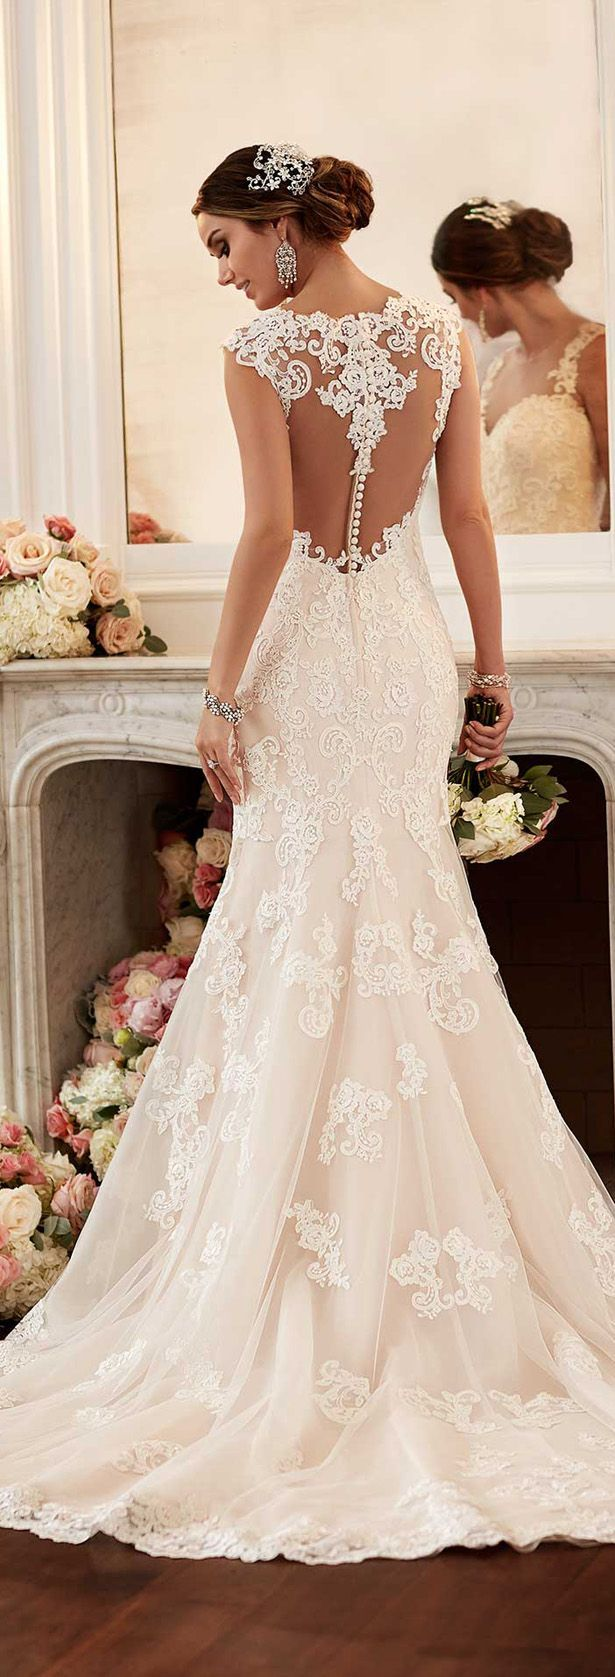 Best 25 wedding dresses ideas on pinterest dream wedding stella york spring 2016 bridal collection ombrellifo Choice Image